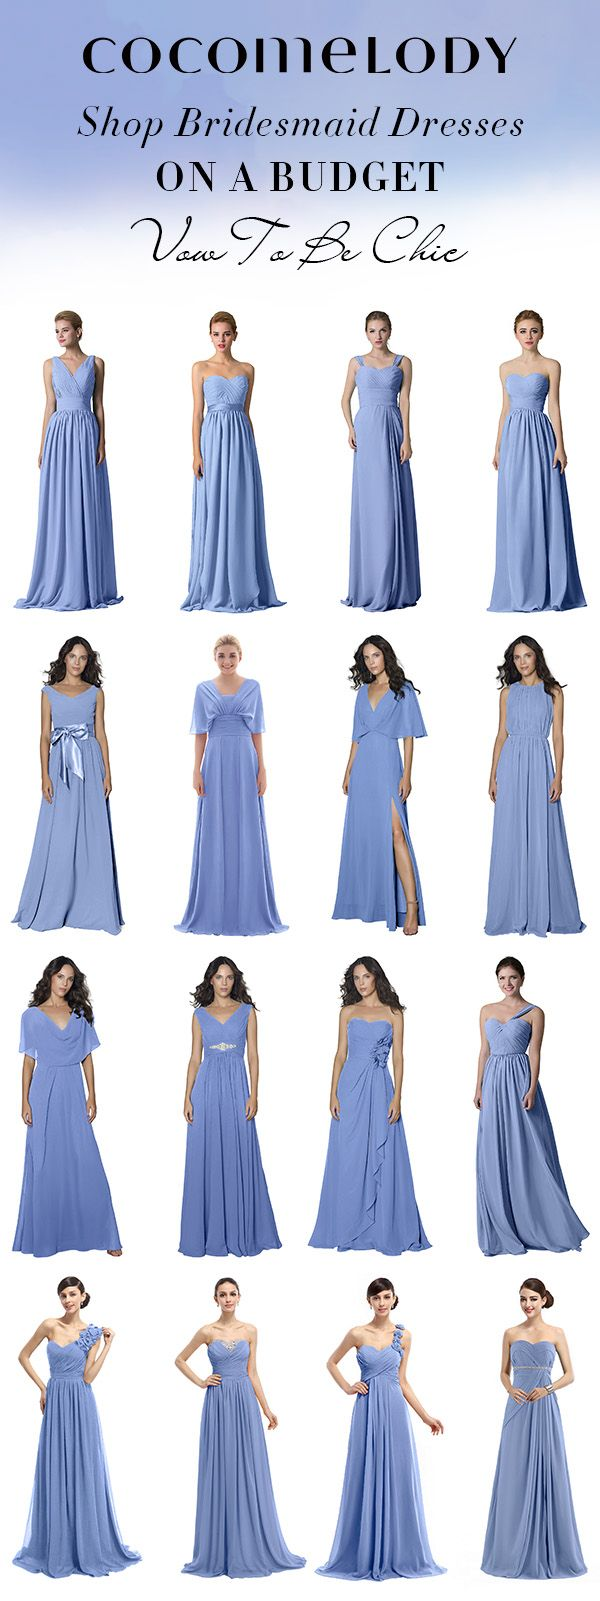 177 best shop by color bridesmaid dresses images on pinterest shop your bridesmaid dress on a budget and vow to be chic bridesmaiddresses ombrellifo Choice Image